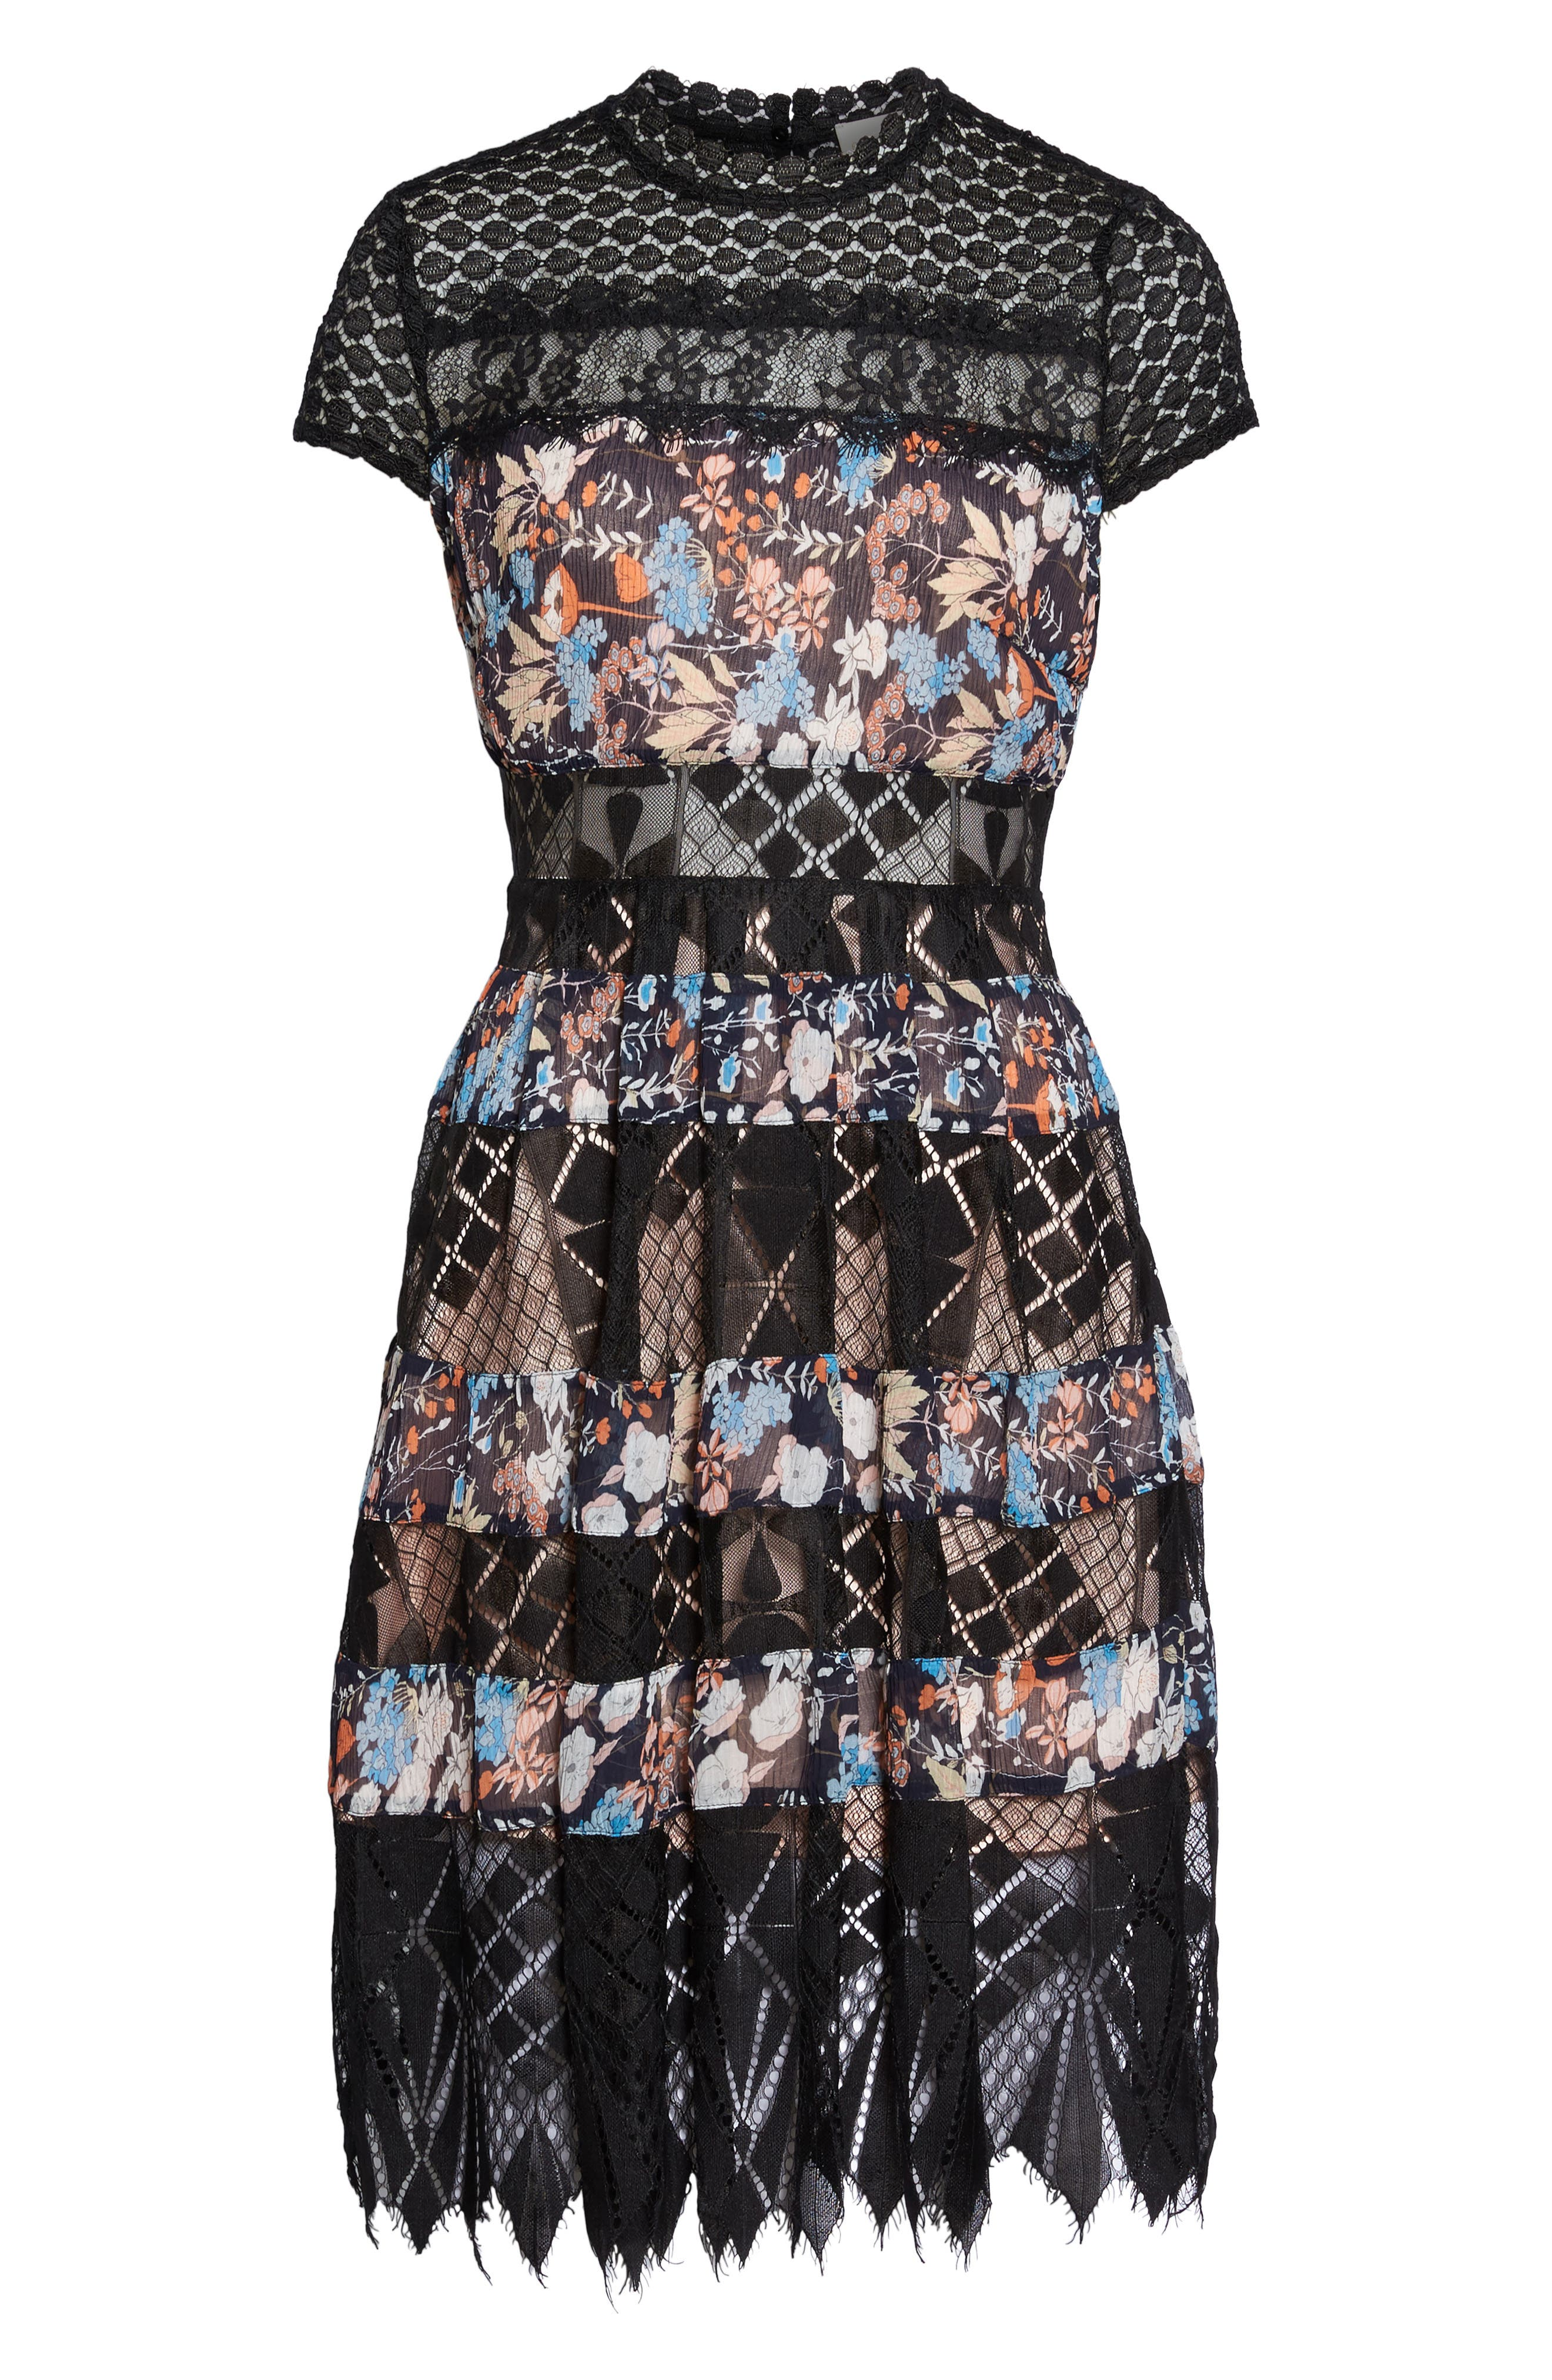 Adriana Lace Panel Dress,                             Alternate thumbnail 6, color,                             400